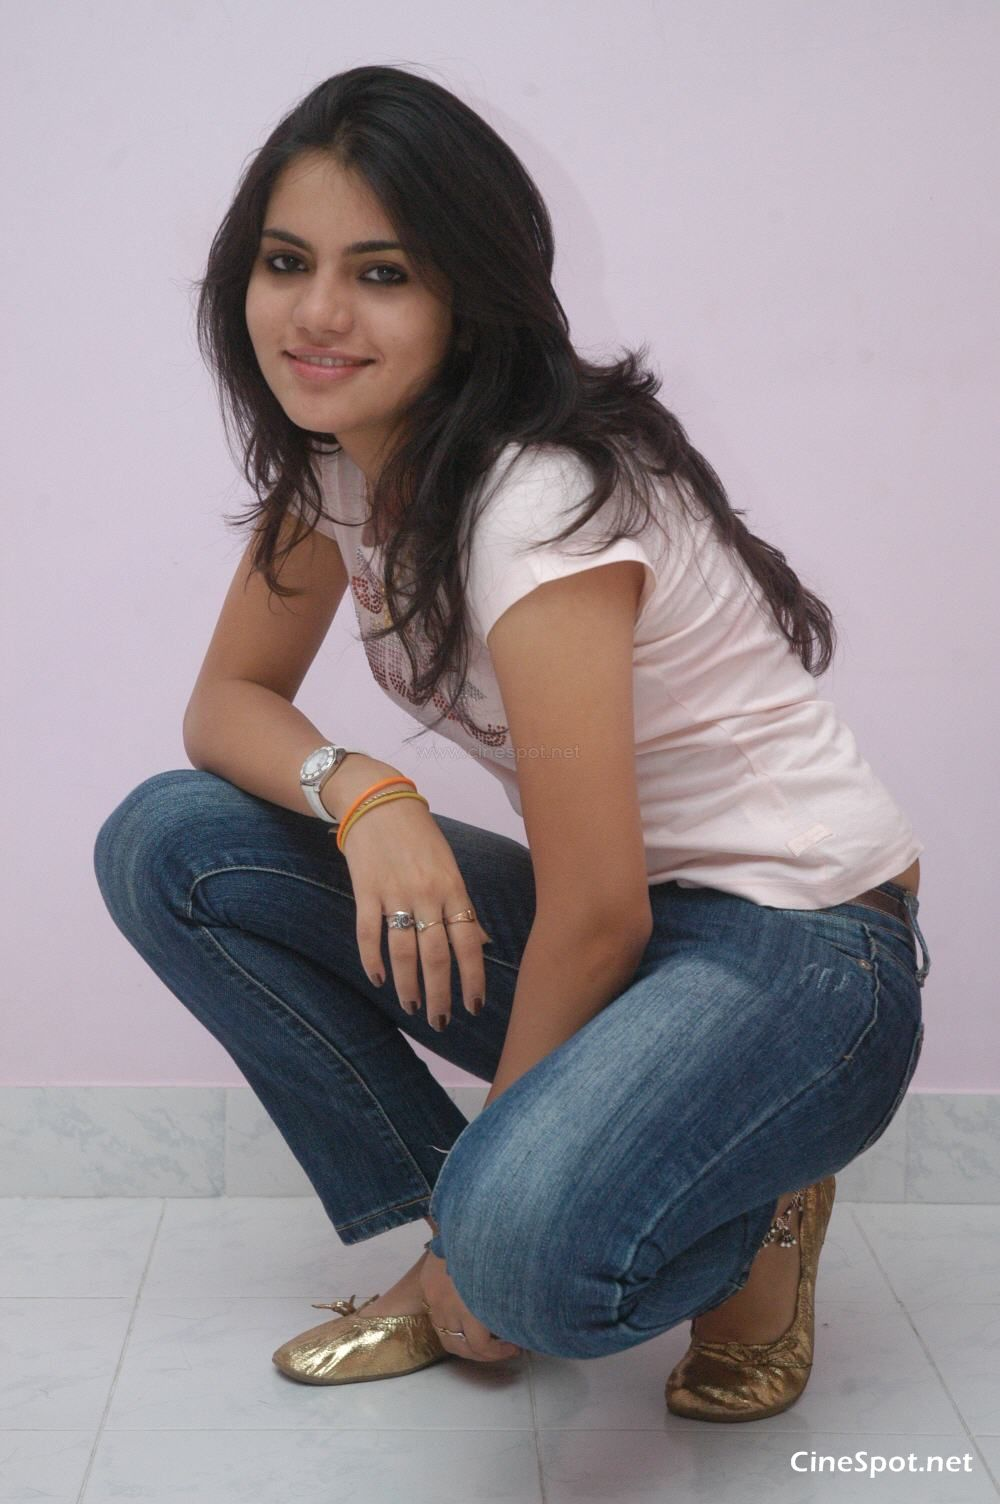 Download this Tej Telgu Actress Hot Sexy Photos picture